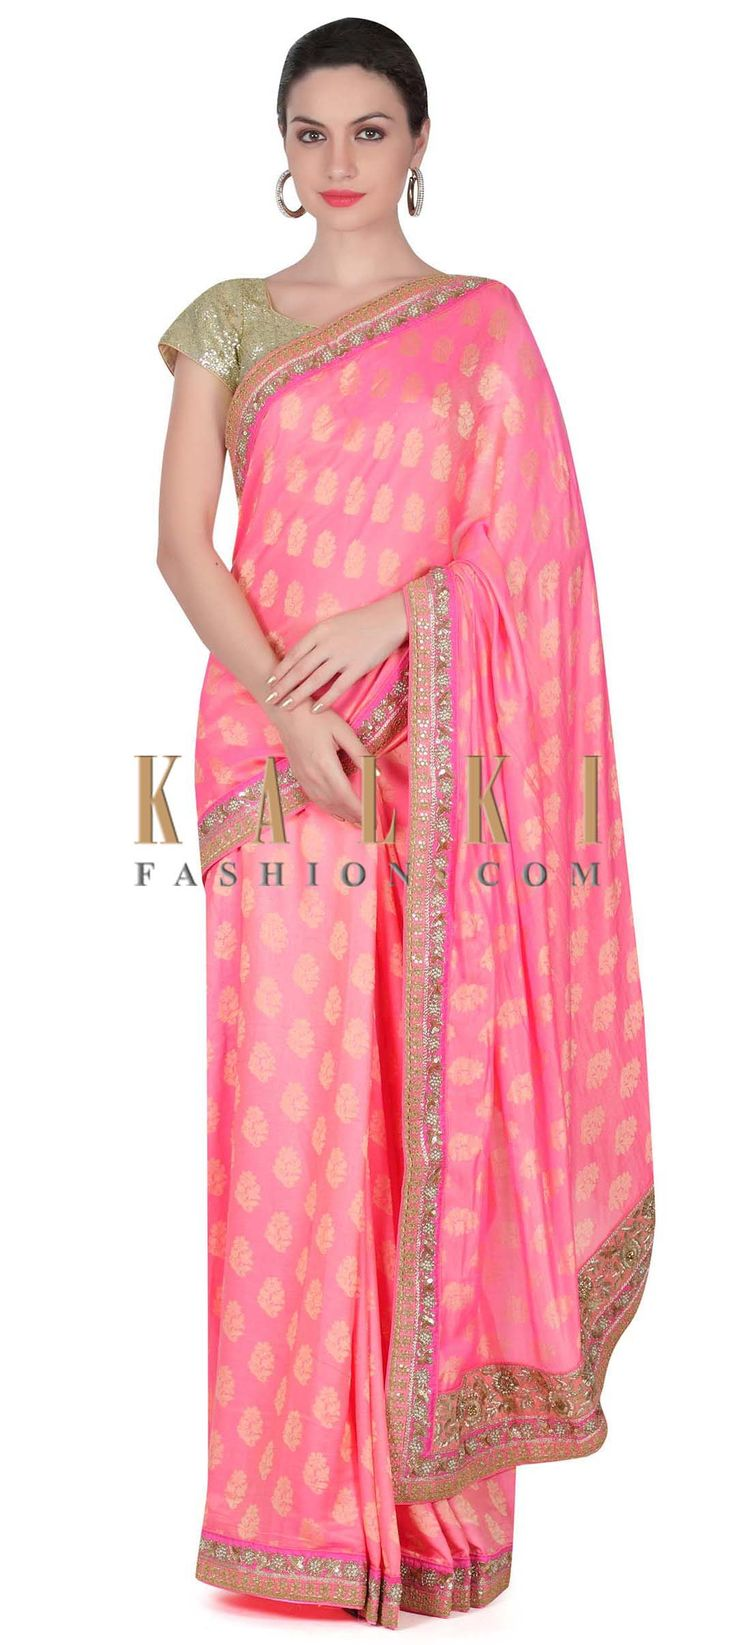 Buy this Pink weaved saree with kundan border only on Kalki